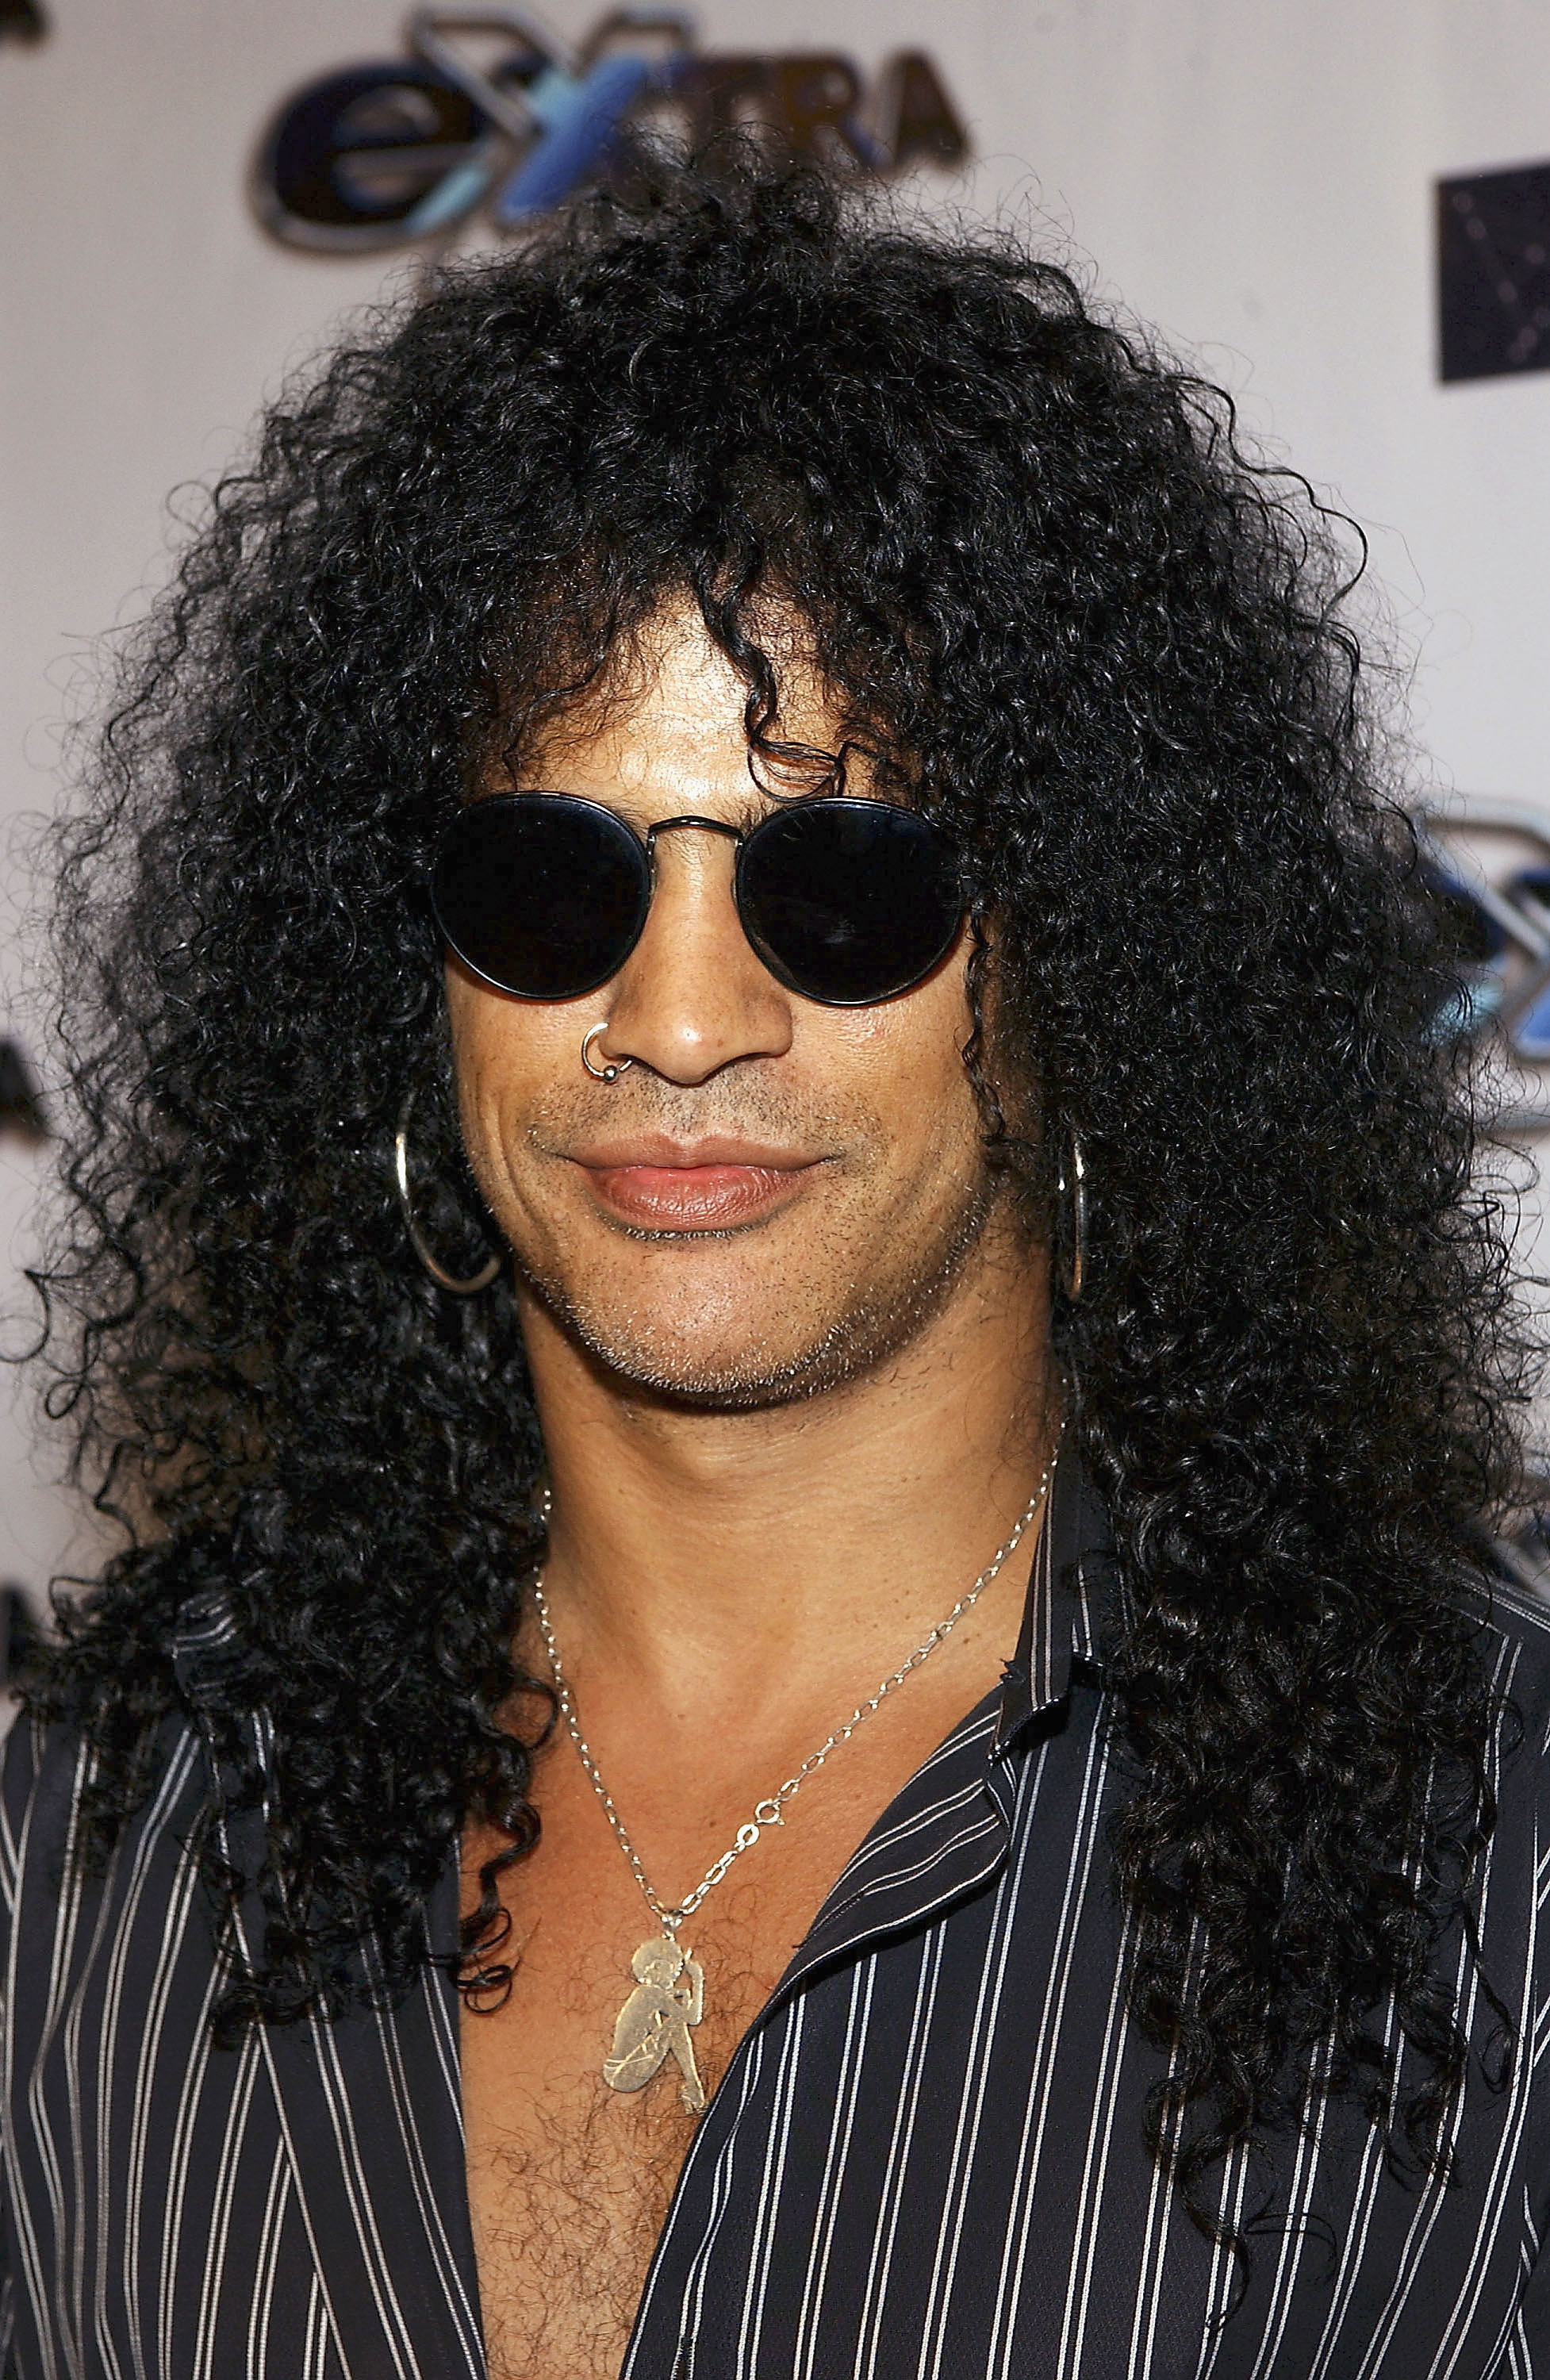 Slash smiling at the camera wearing his signature sunglasses, with his hair down and in a button-up top